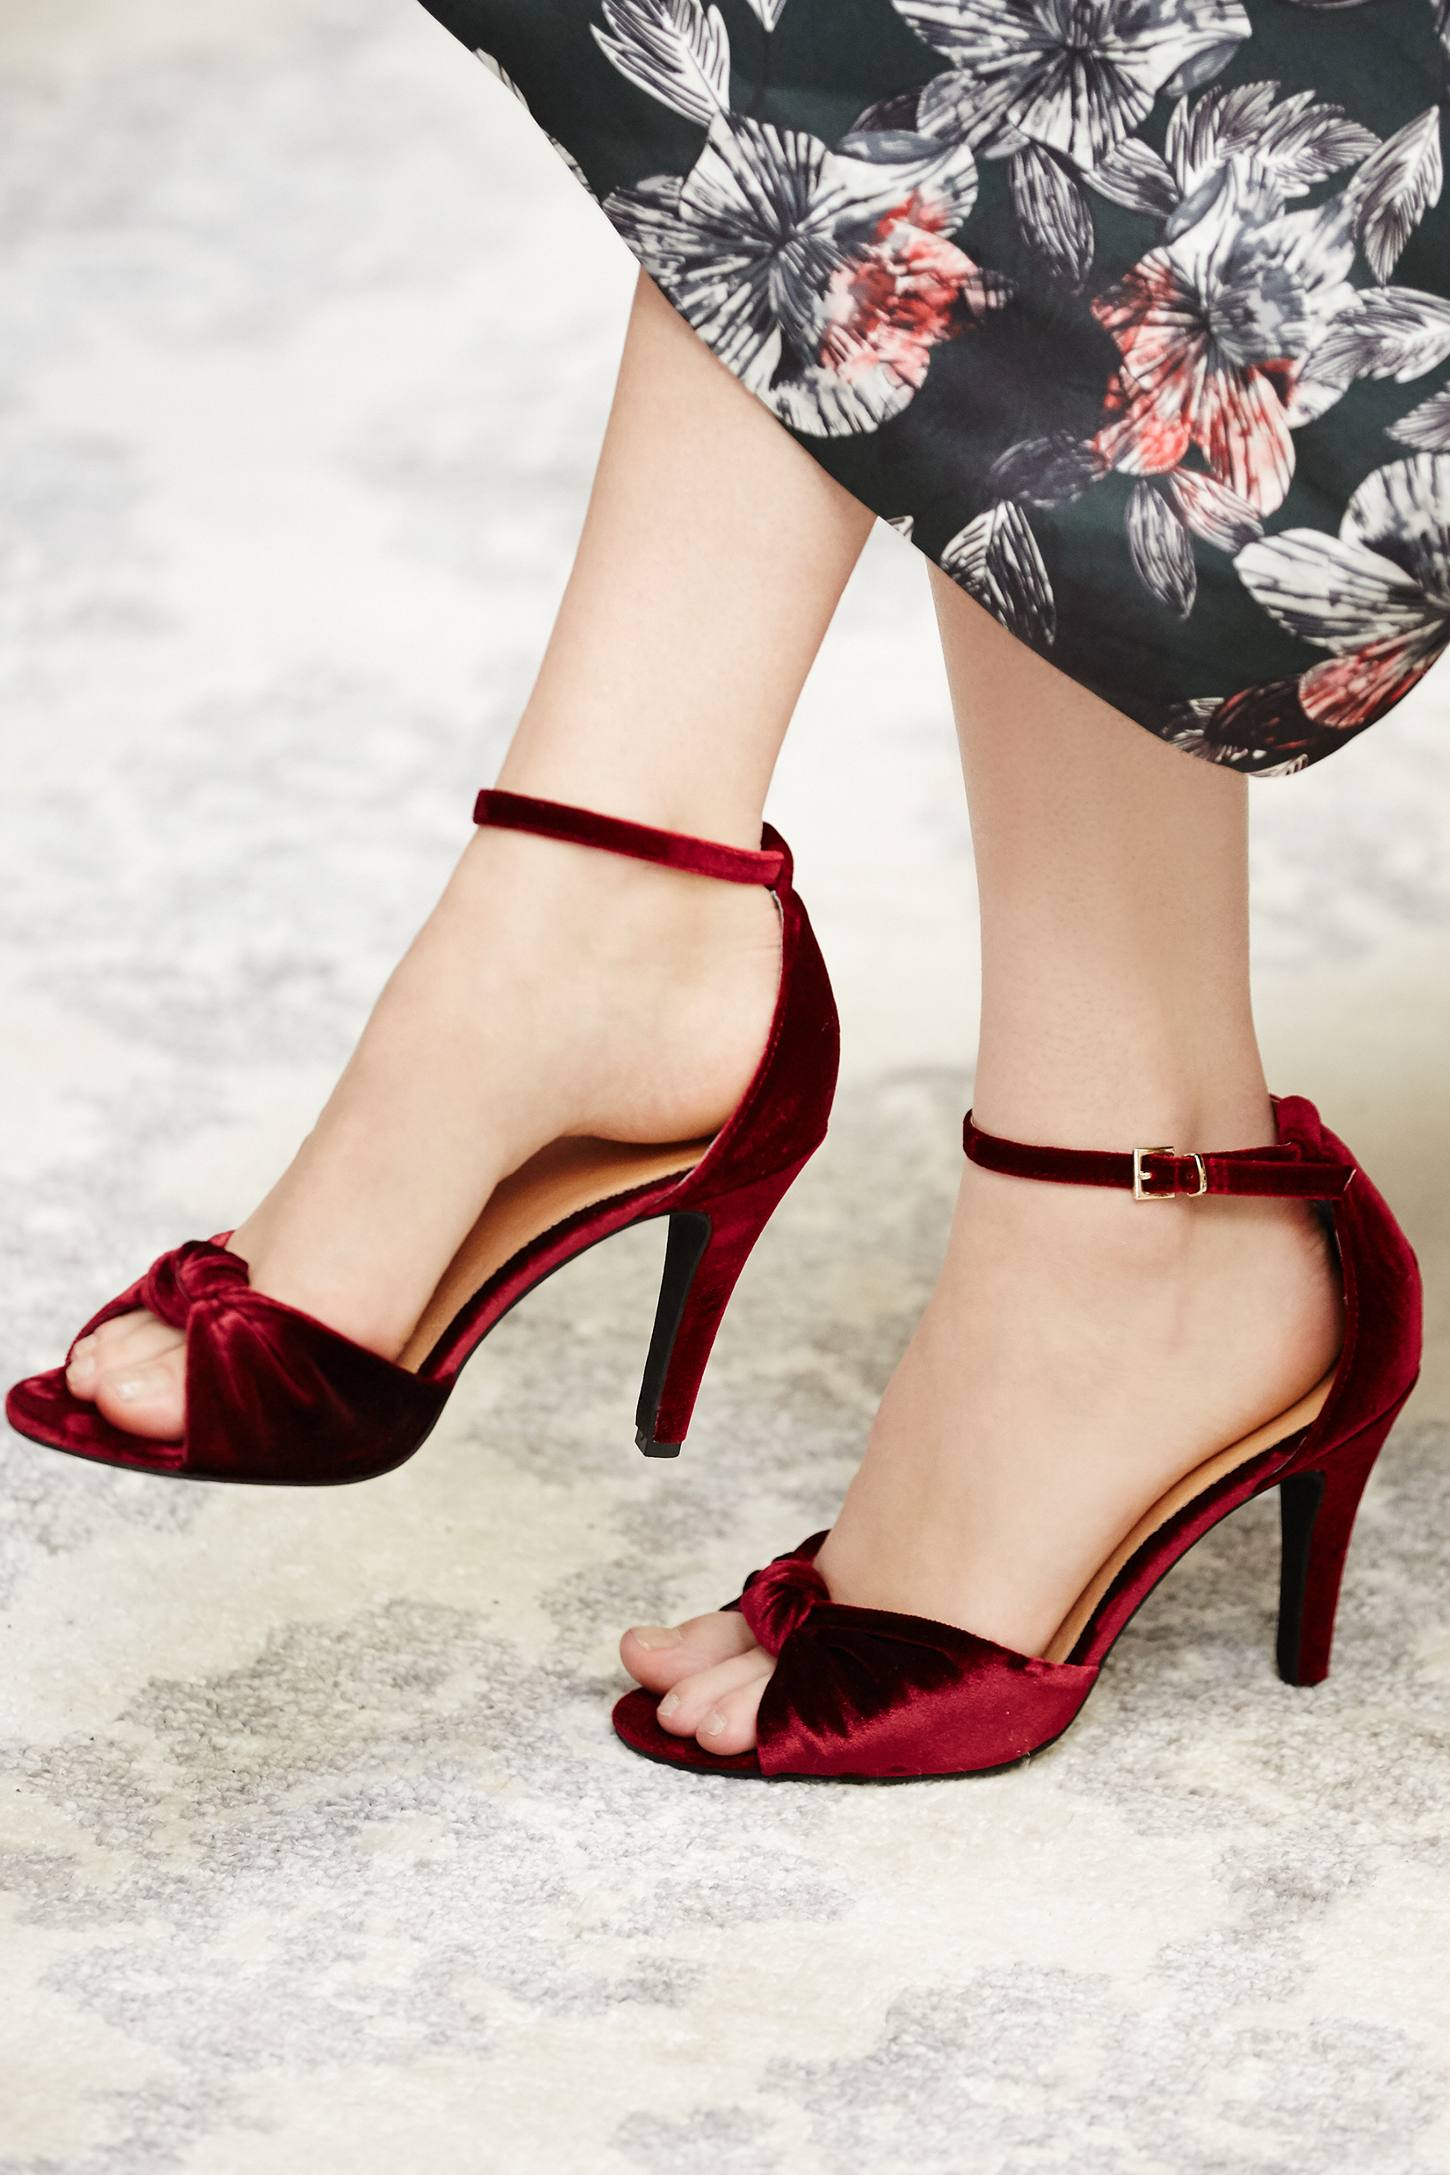 Julieta Heels by Lien.Do